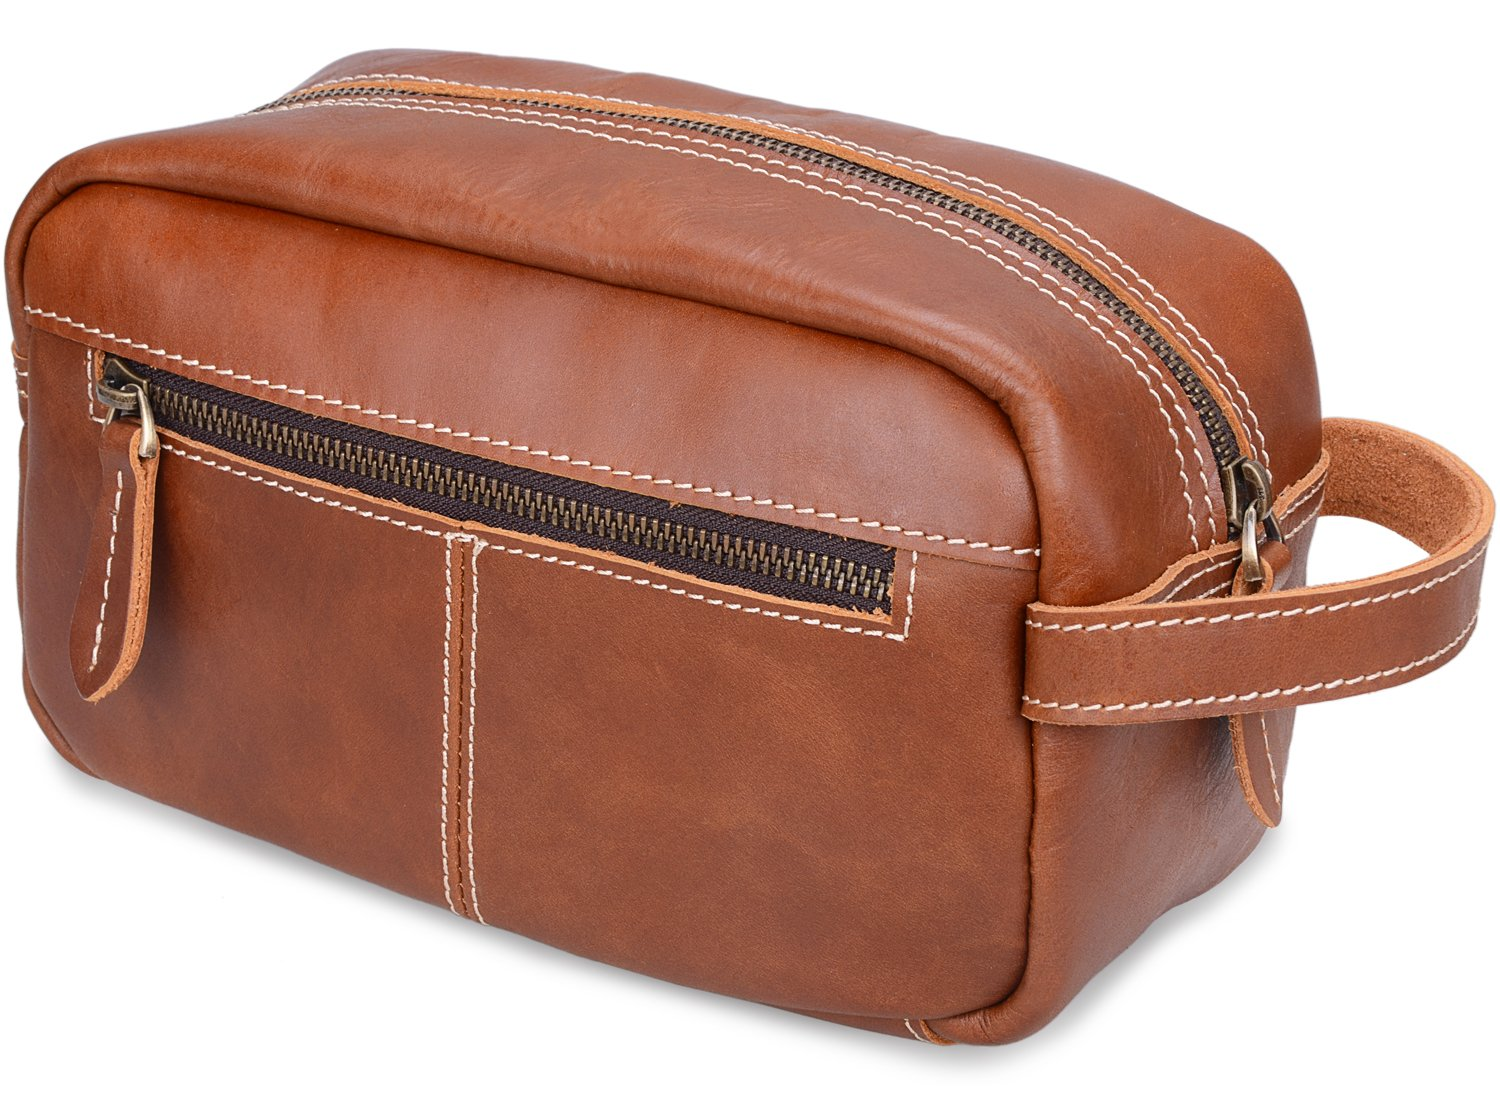 ALTOSY Mens Leather Toiletry Bag Travel Shaving Dopp kits Organizer Case (YD8102, Light Brown)